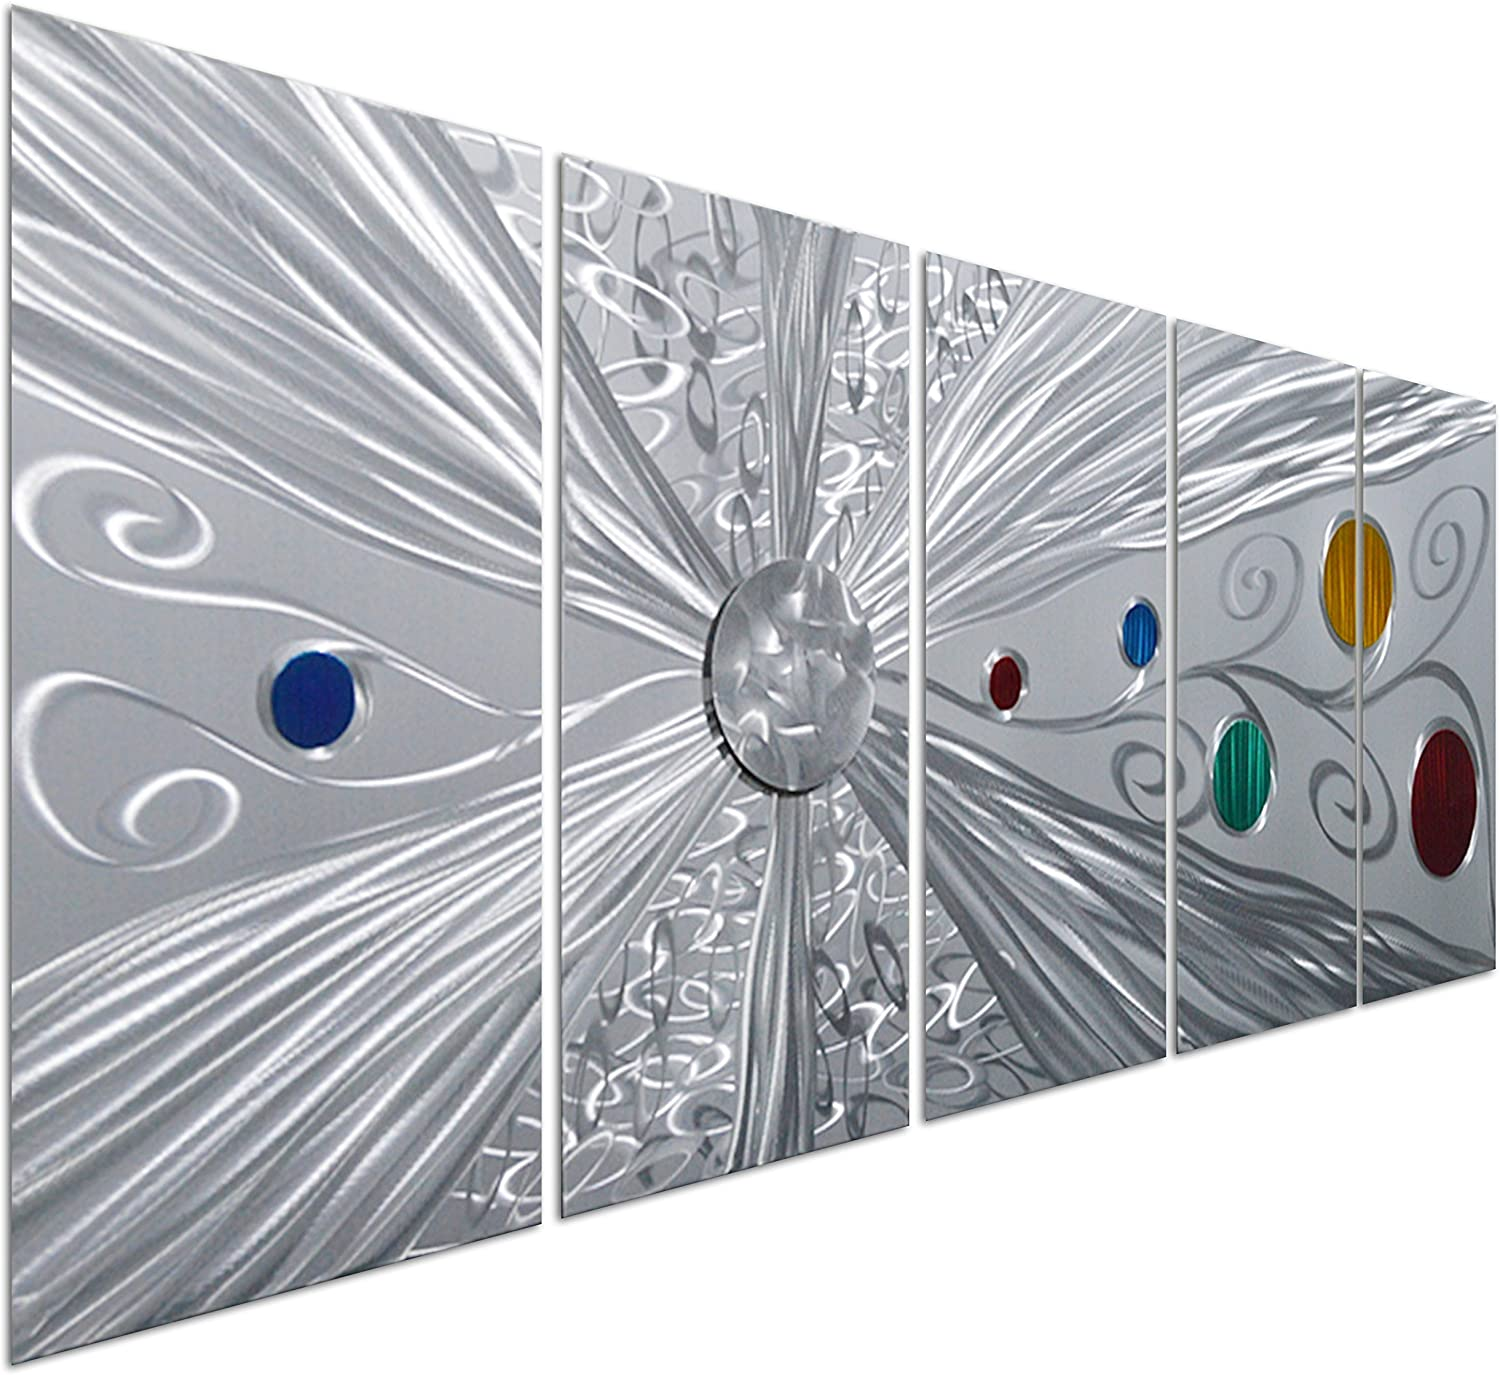 Pure Art Silver Solstice - Metal Wall Art Decor - Abstract Modern Space Silver with Red, Yellow, Green and Blue Circles, Hanging Sculpture - Set of 5 Panels for Your Home or Office - 64